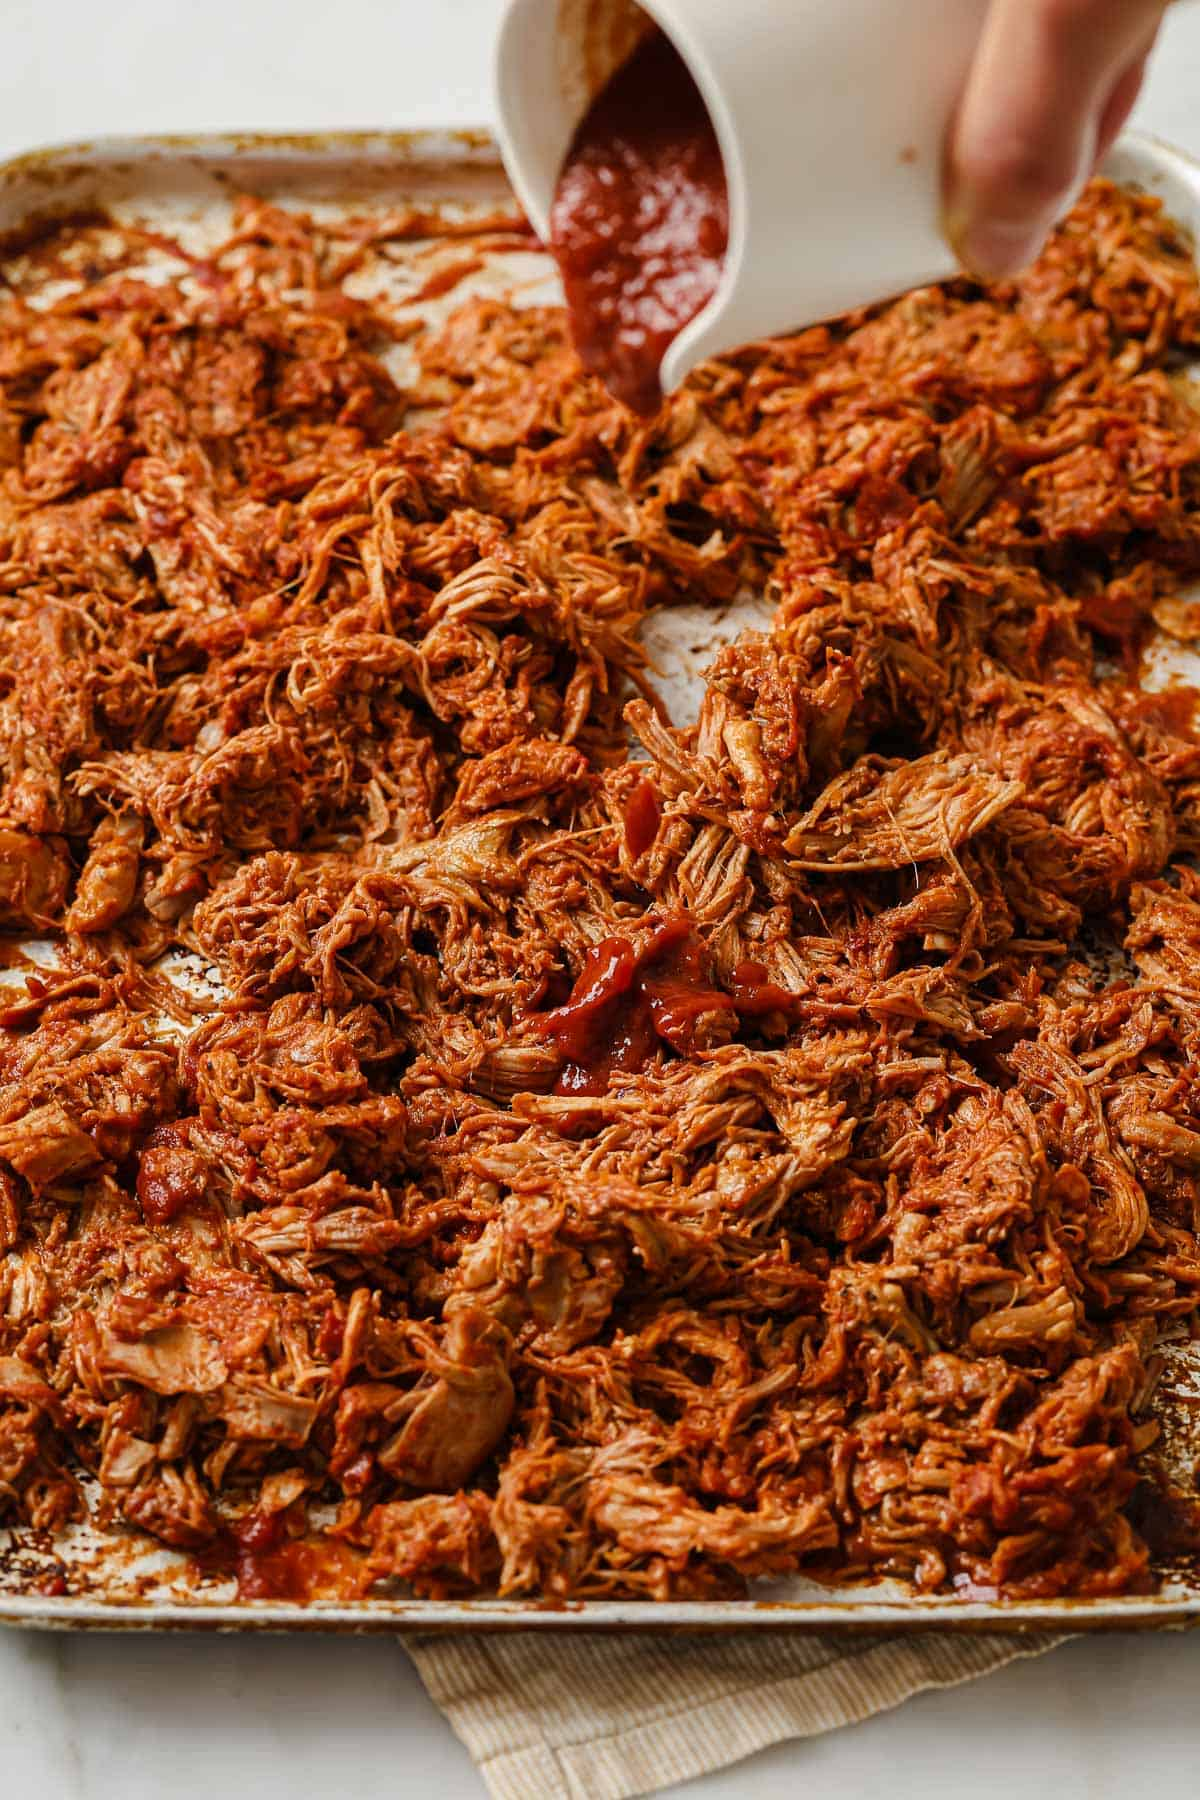 cooked and shredded pork butt, tossed with keto barbecue sauce, on a sheet pan